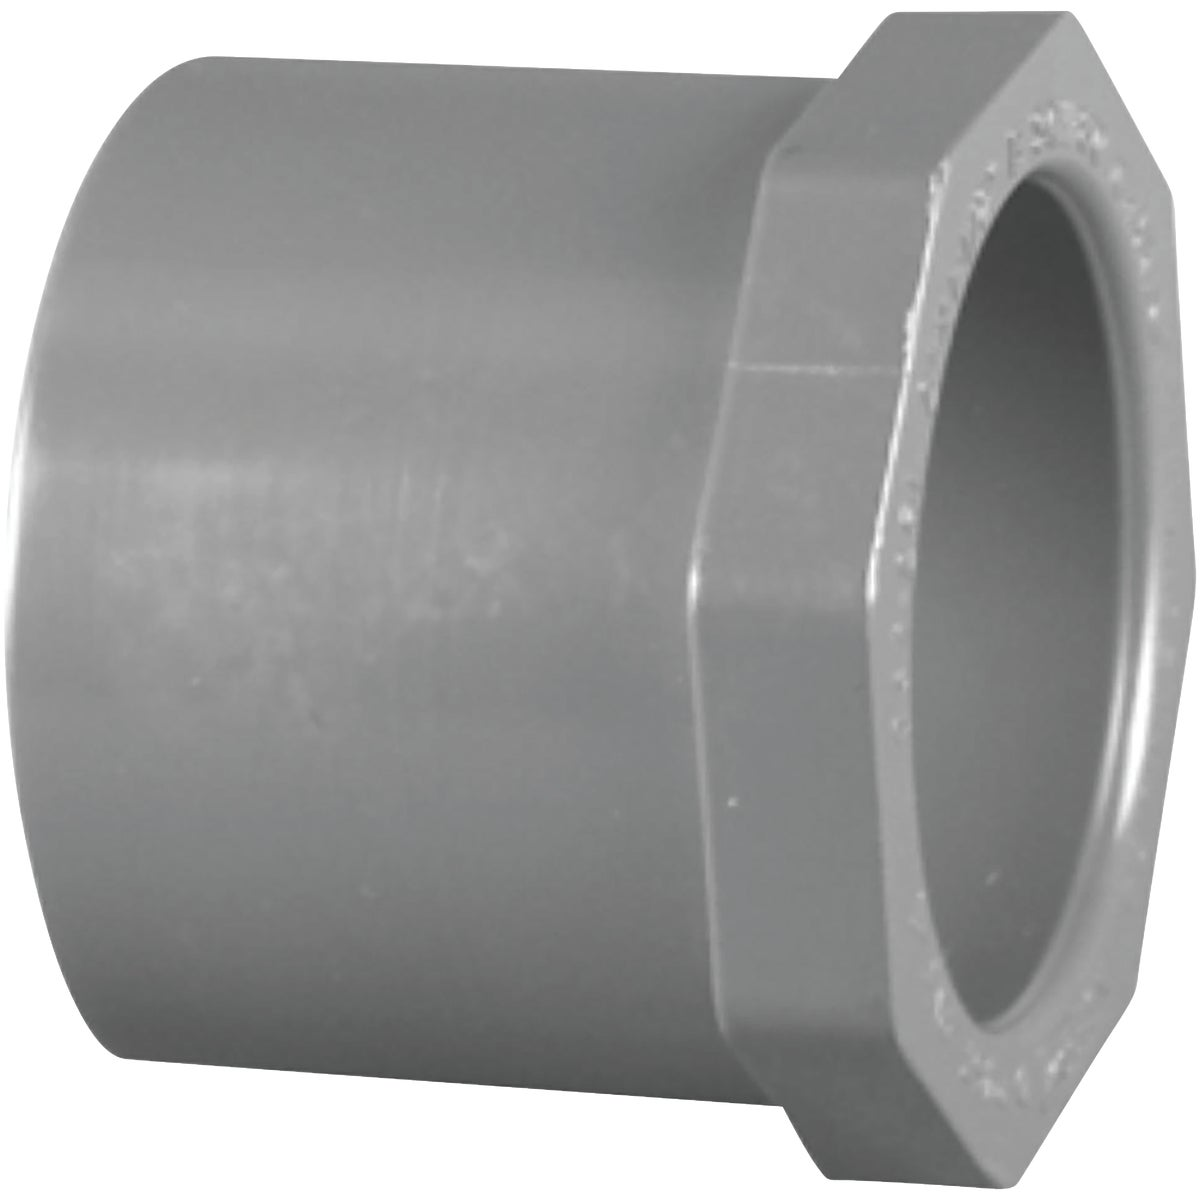 1X3/4 SPXS SCH80 BUSHING - 302178 by Genova Inc